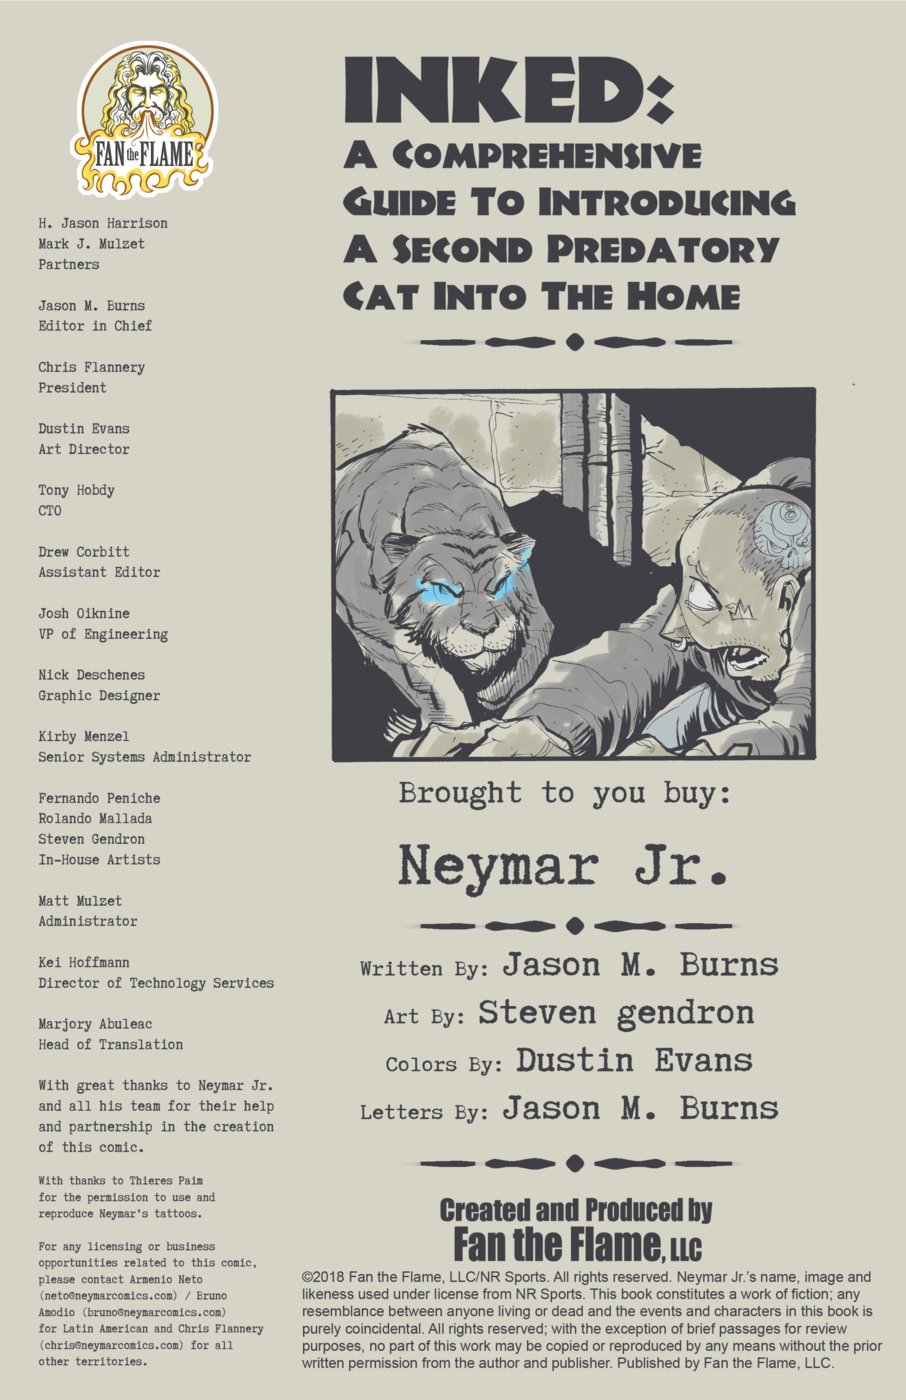 Inked: A Comprehensive Guide To Introducing A Second Predatory Cat Into The Home